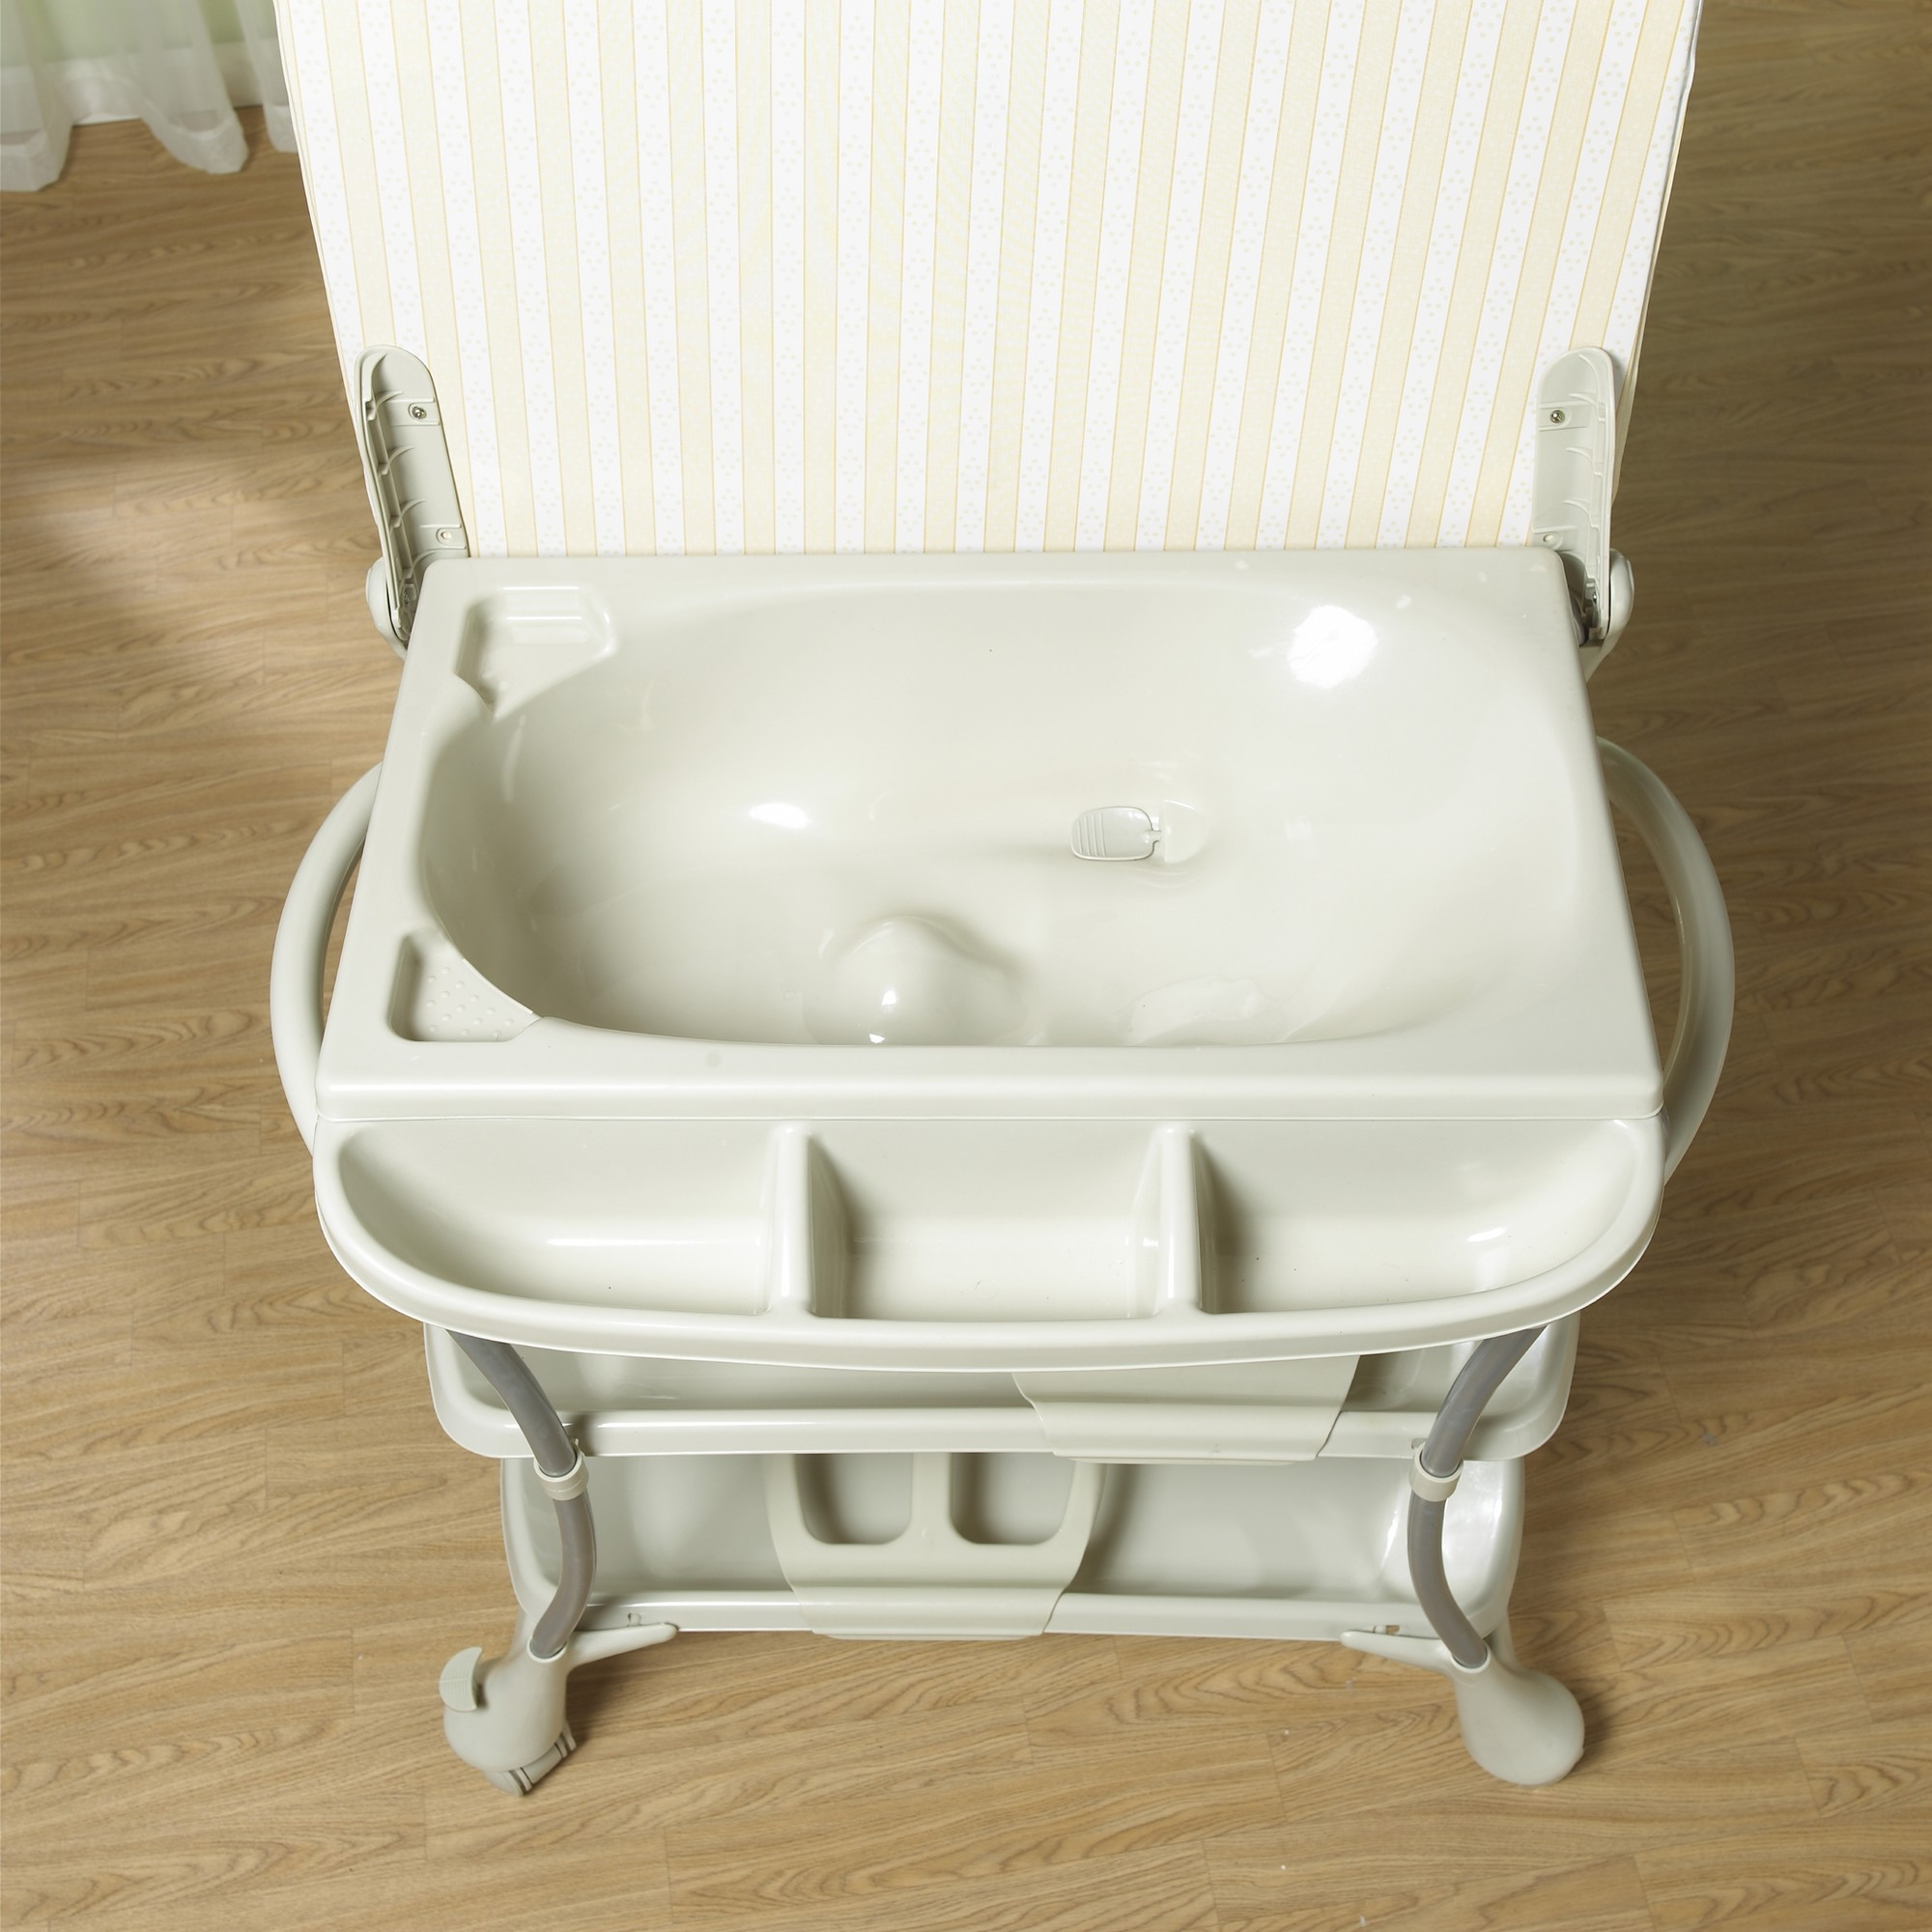 Primo Euro Spa Baby Bathtub and Changer Combo - Walmart.com